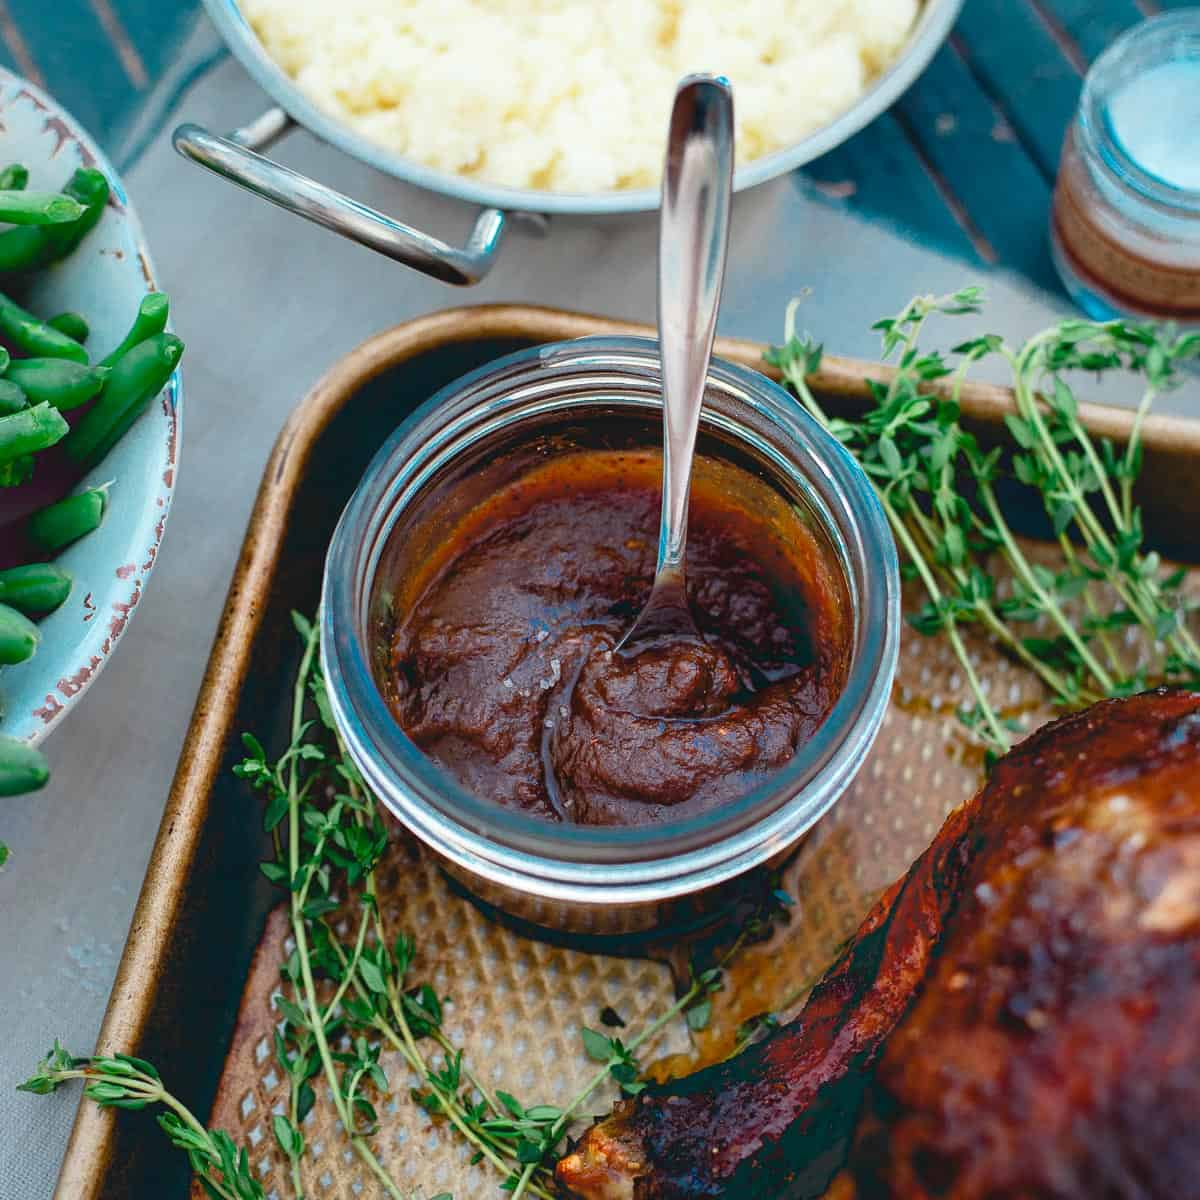 Apple butter with a few savory spices added makes a delicious sauce for a roasted chicken dinner.